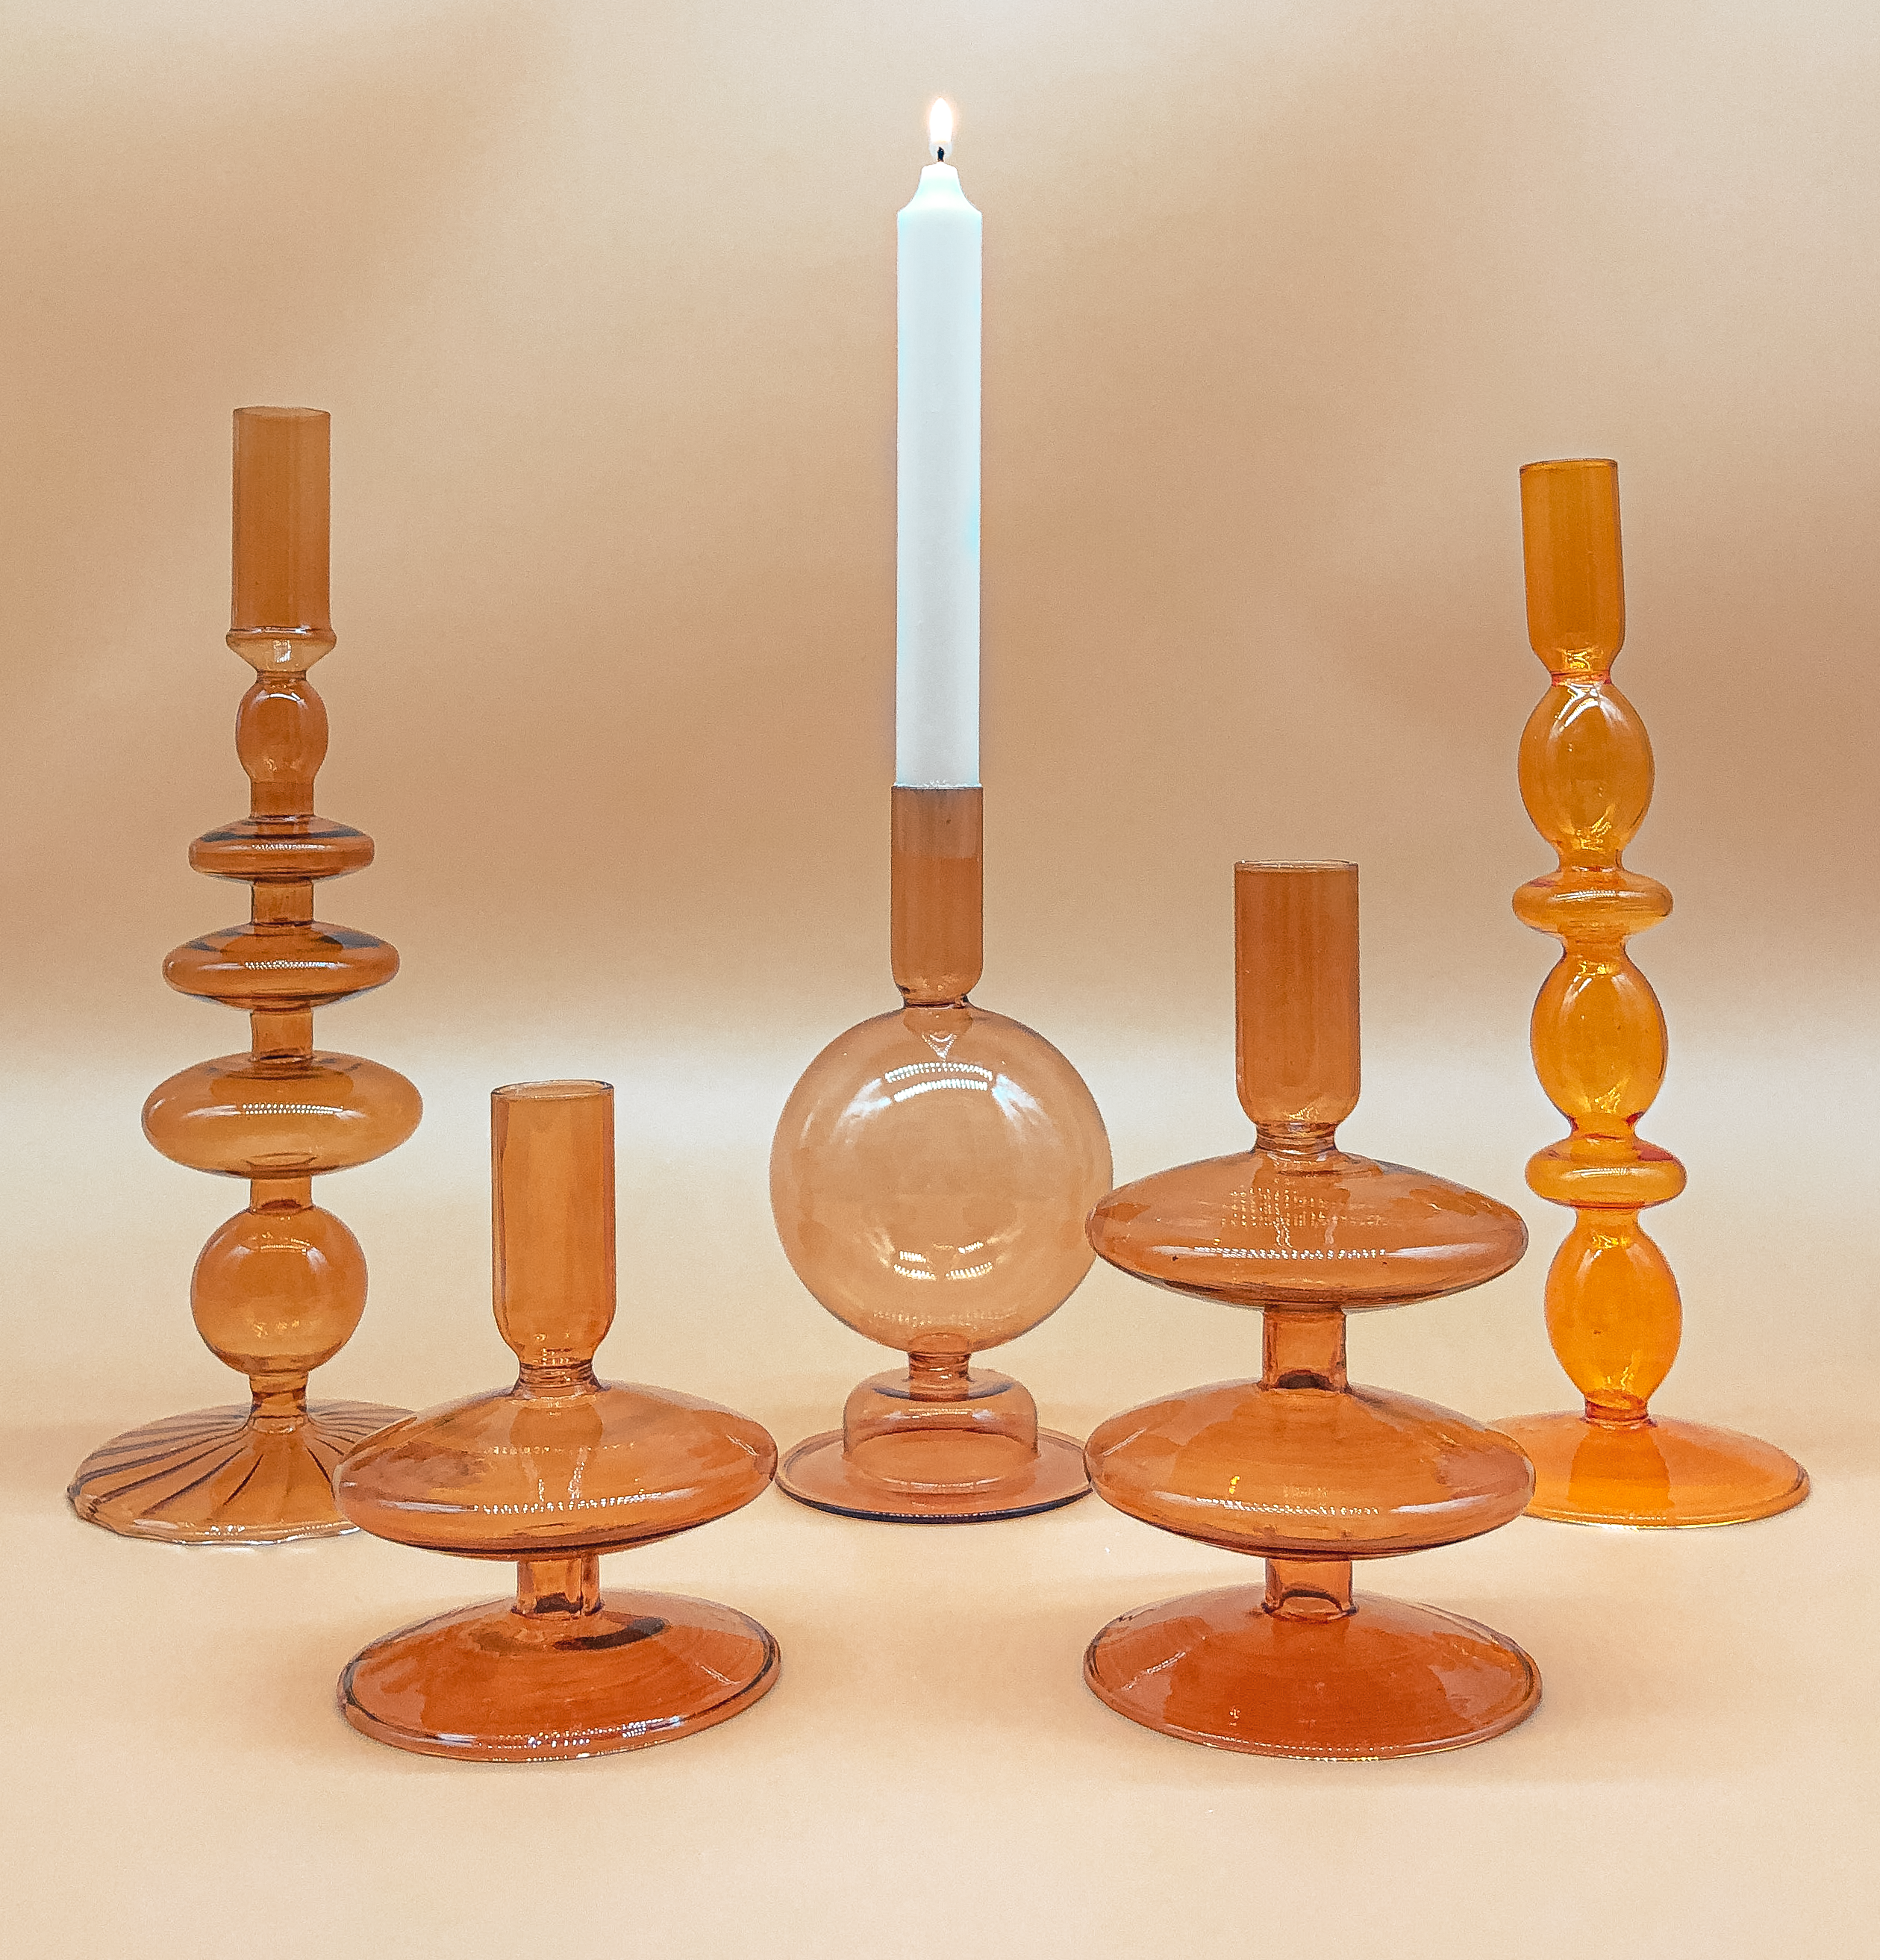 Double Decker Candle Holder in Amber by PROSE Décor